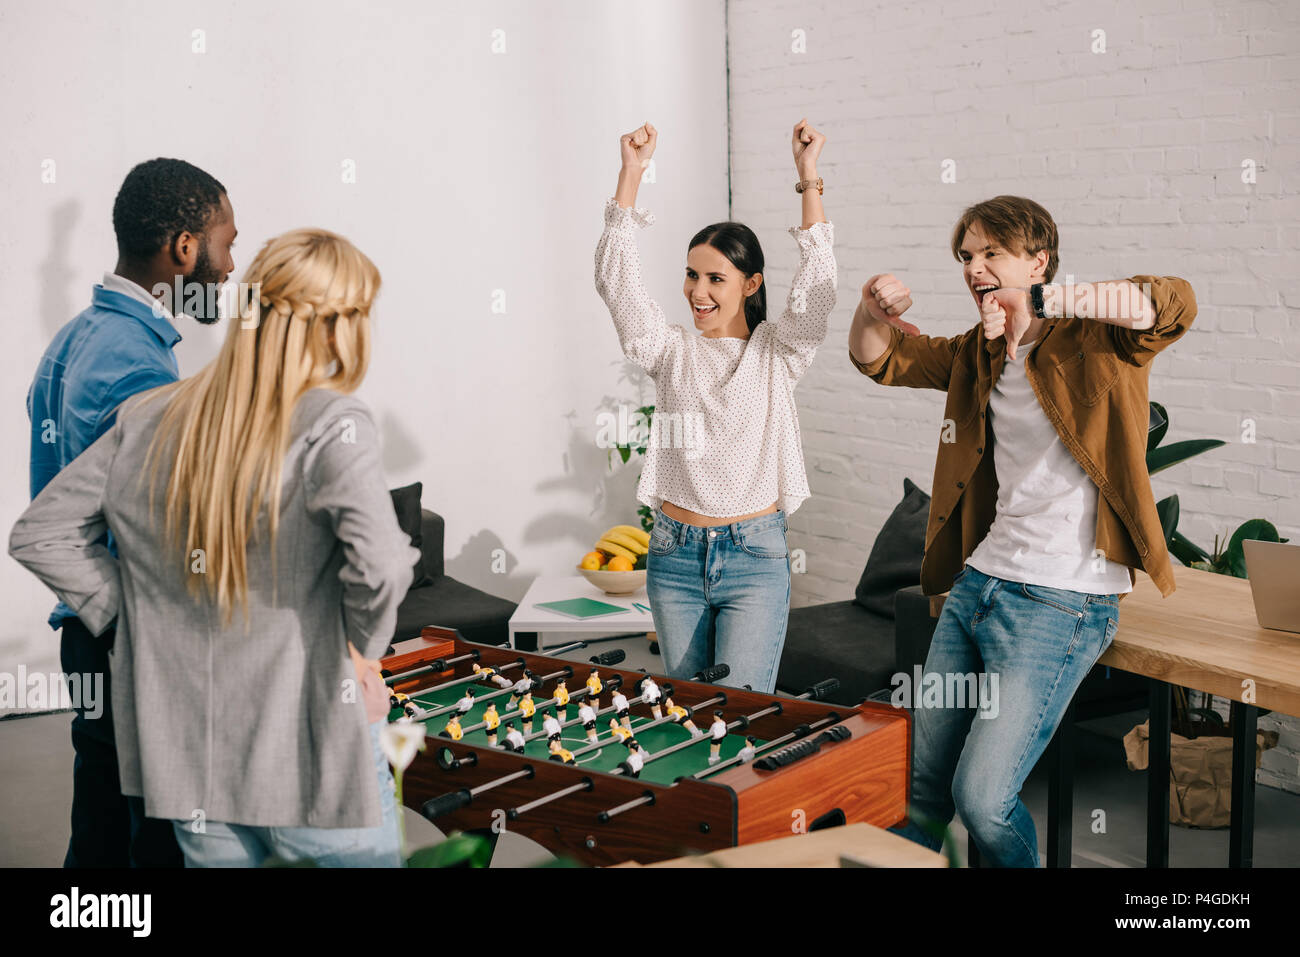 happy business partners celebrating victory in table football with arms up and thumbs down gestures in front of colleagues - Stock Image